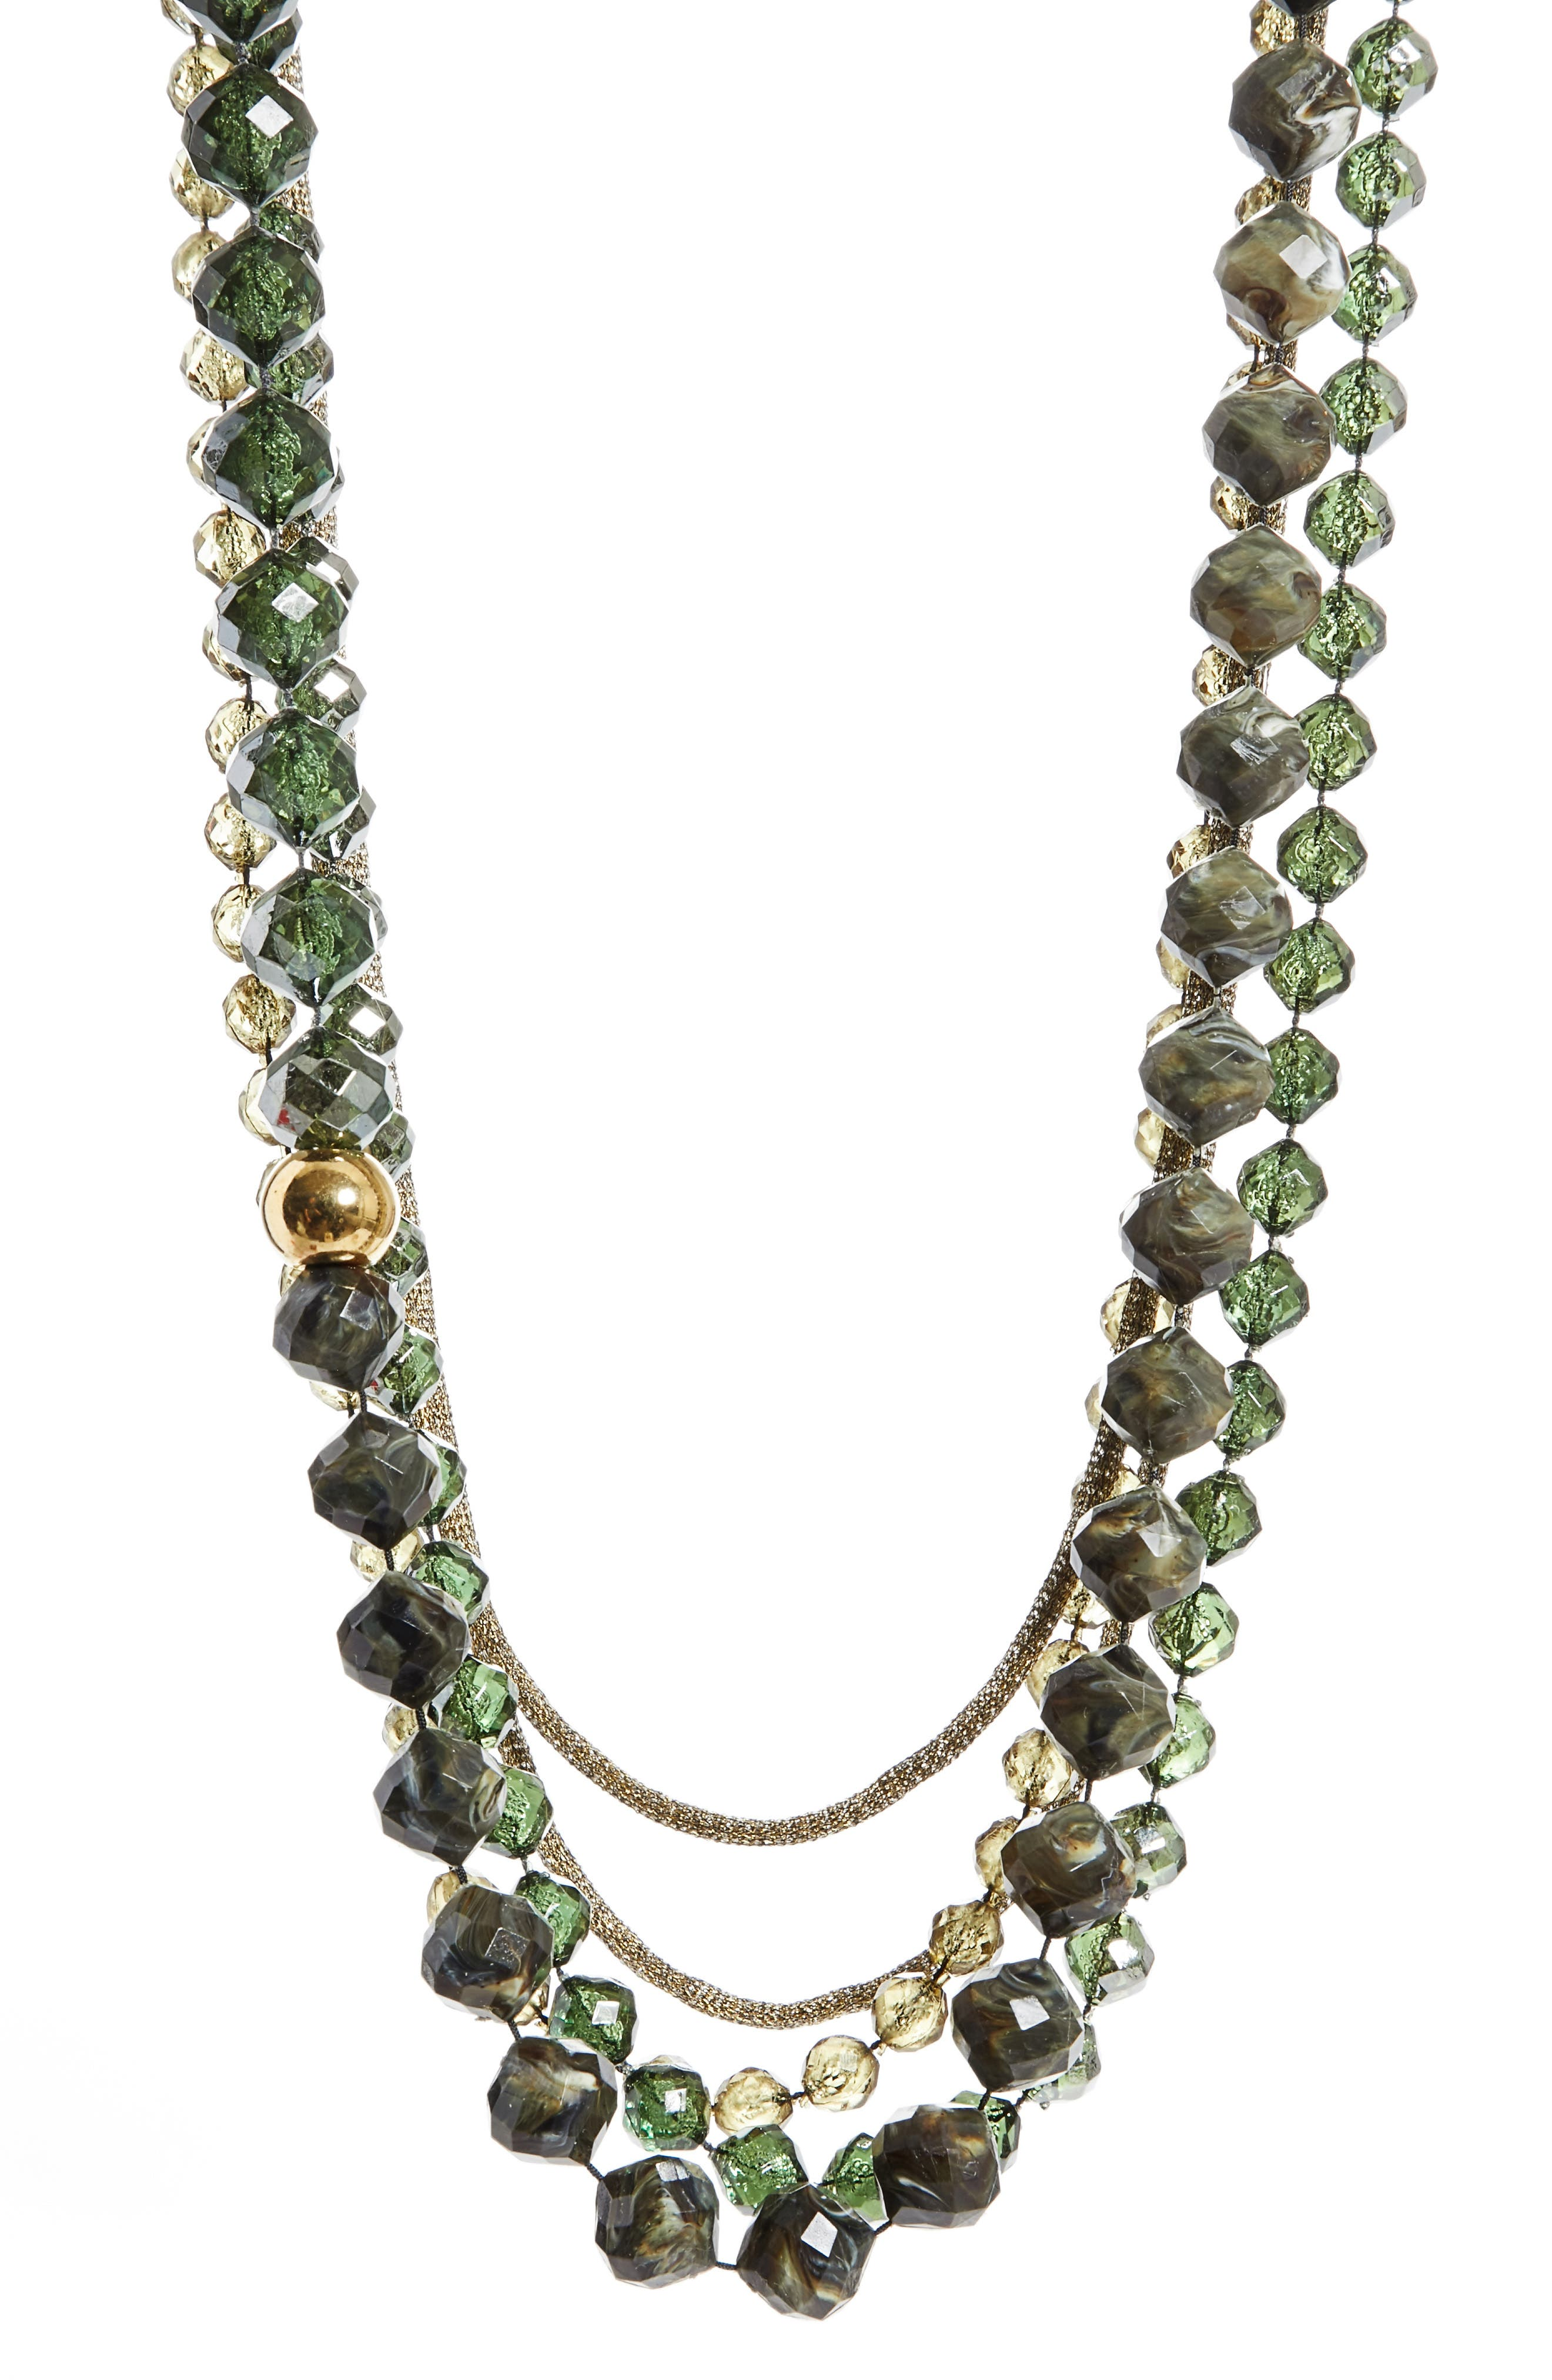 Alternate Image 1 Selected - Lafayette 148 New York Ombré Beaded Necklace